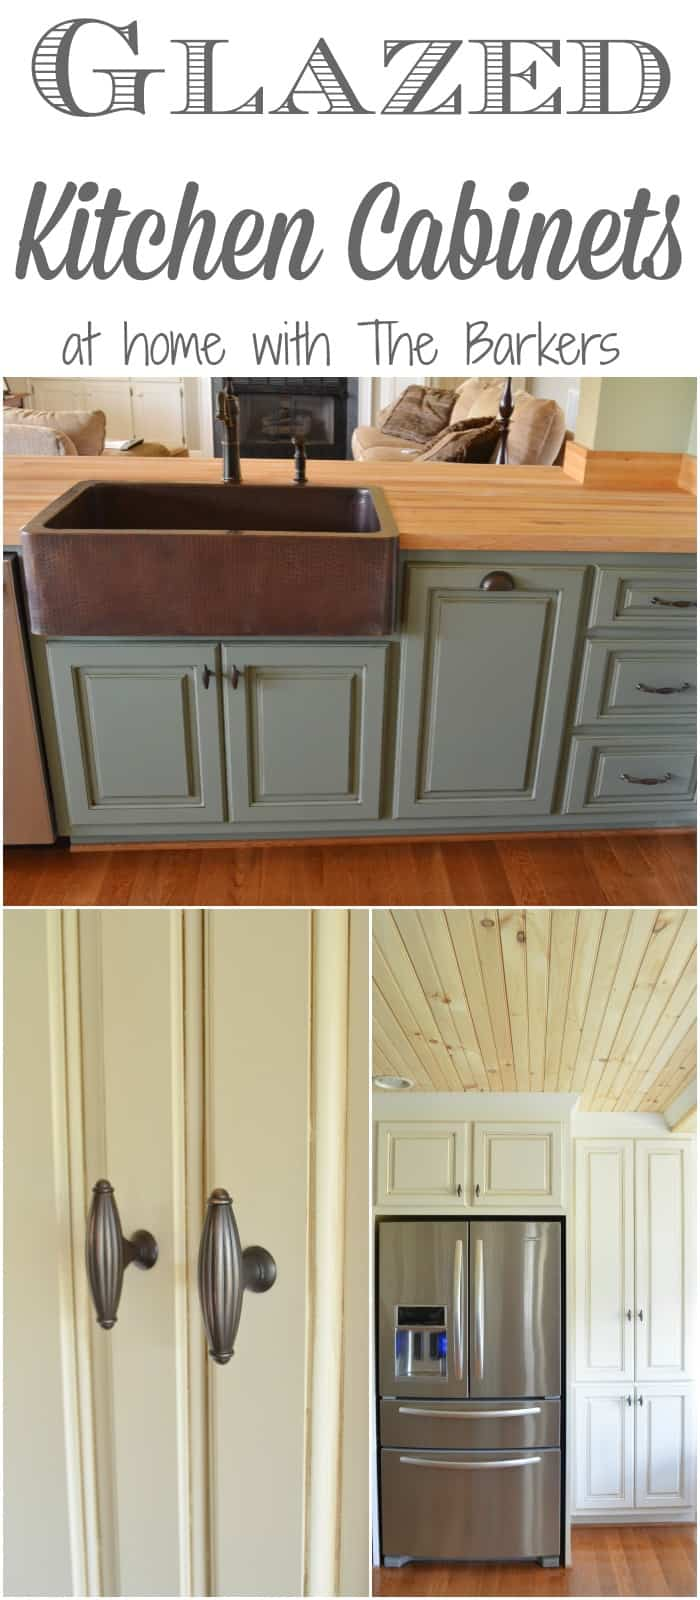 How to glaze cabinets at home with the barkers for Kitchen cabinets jobs